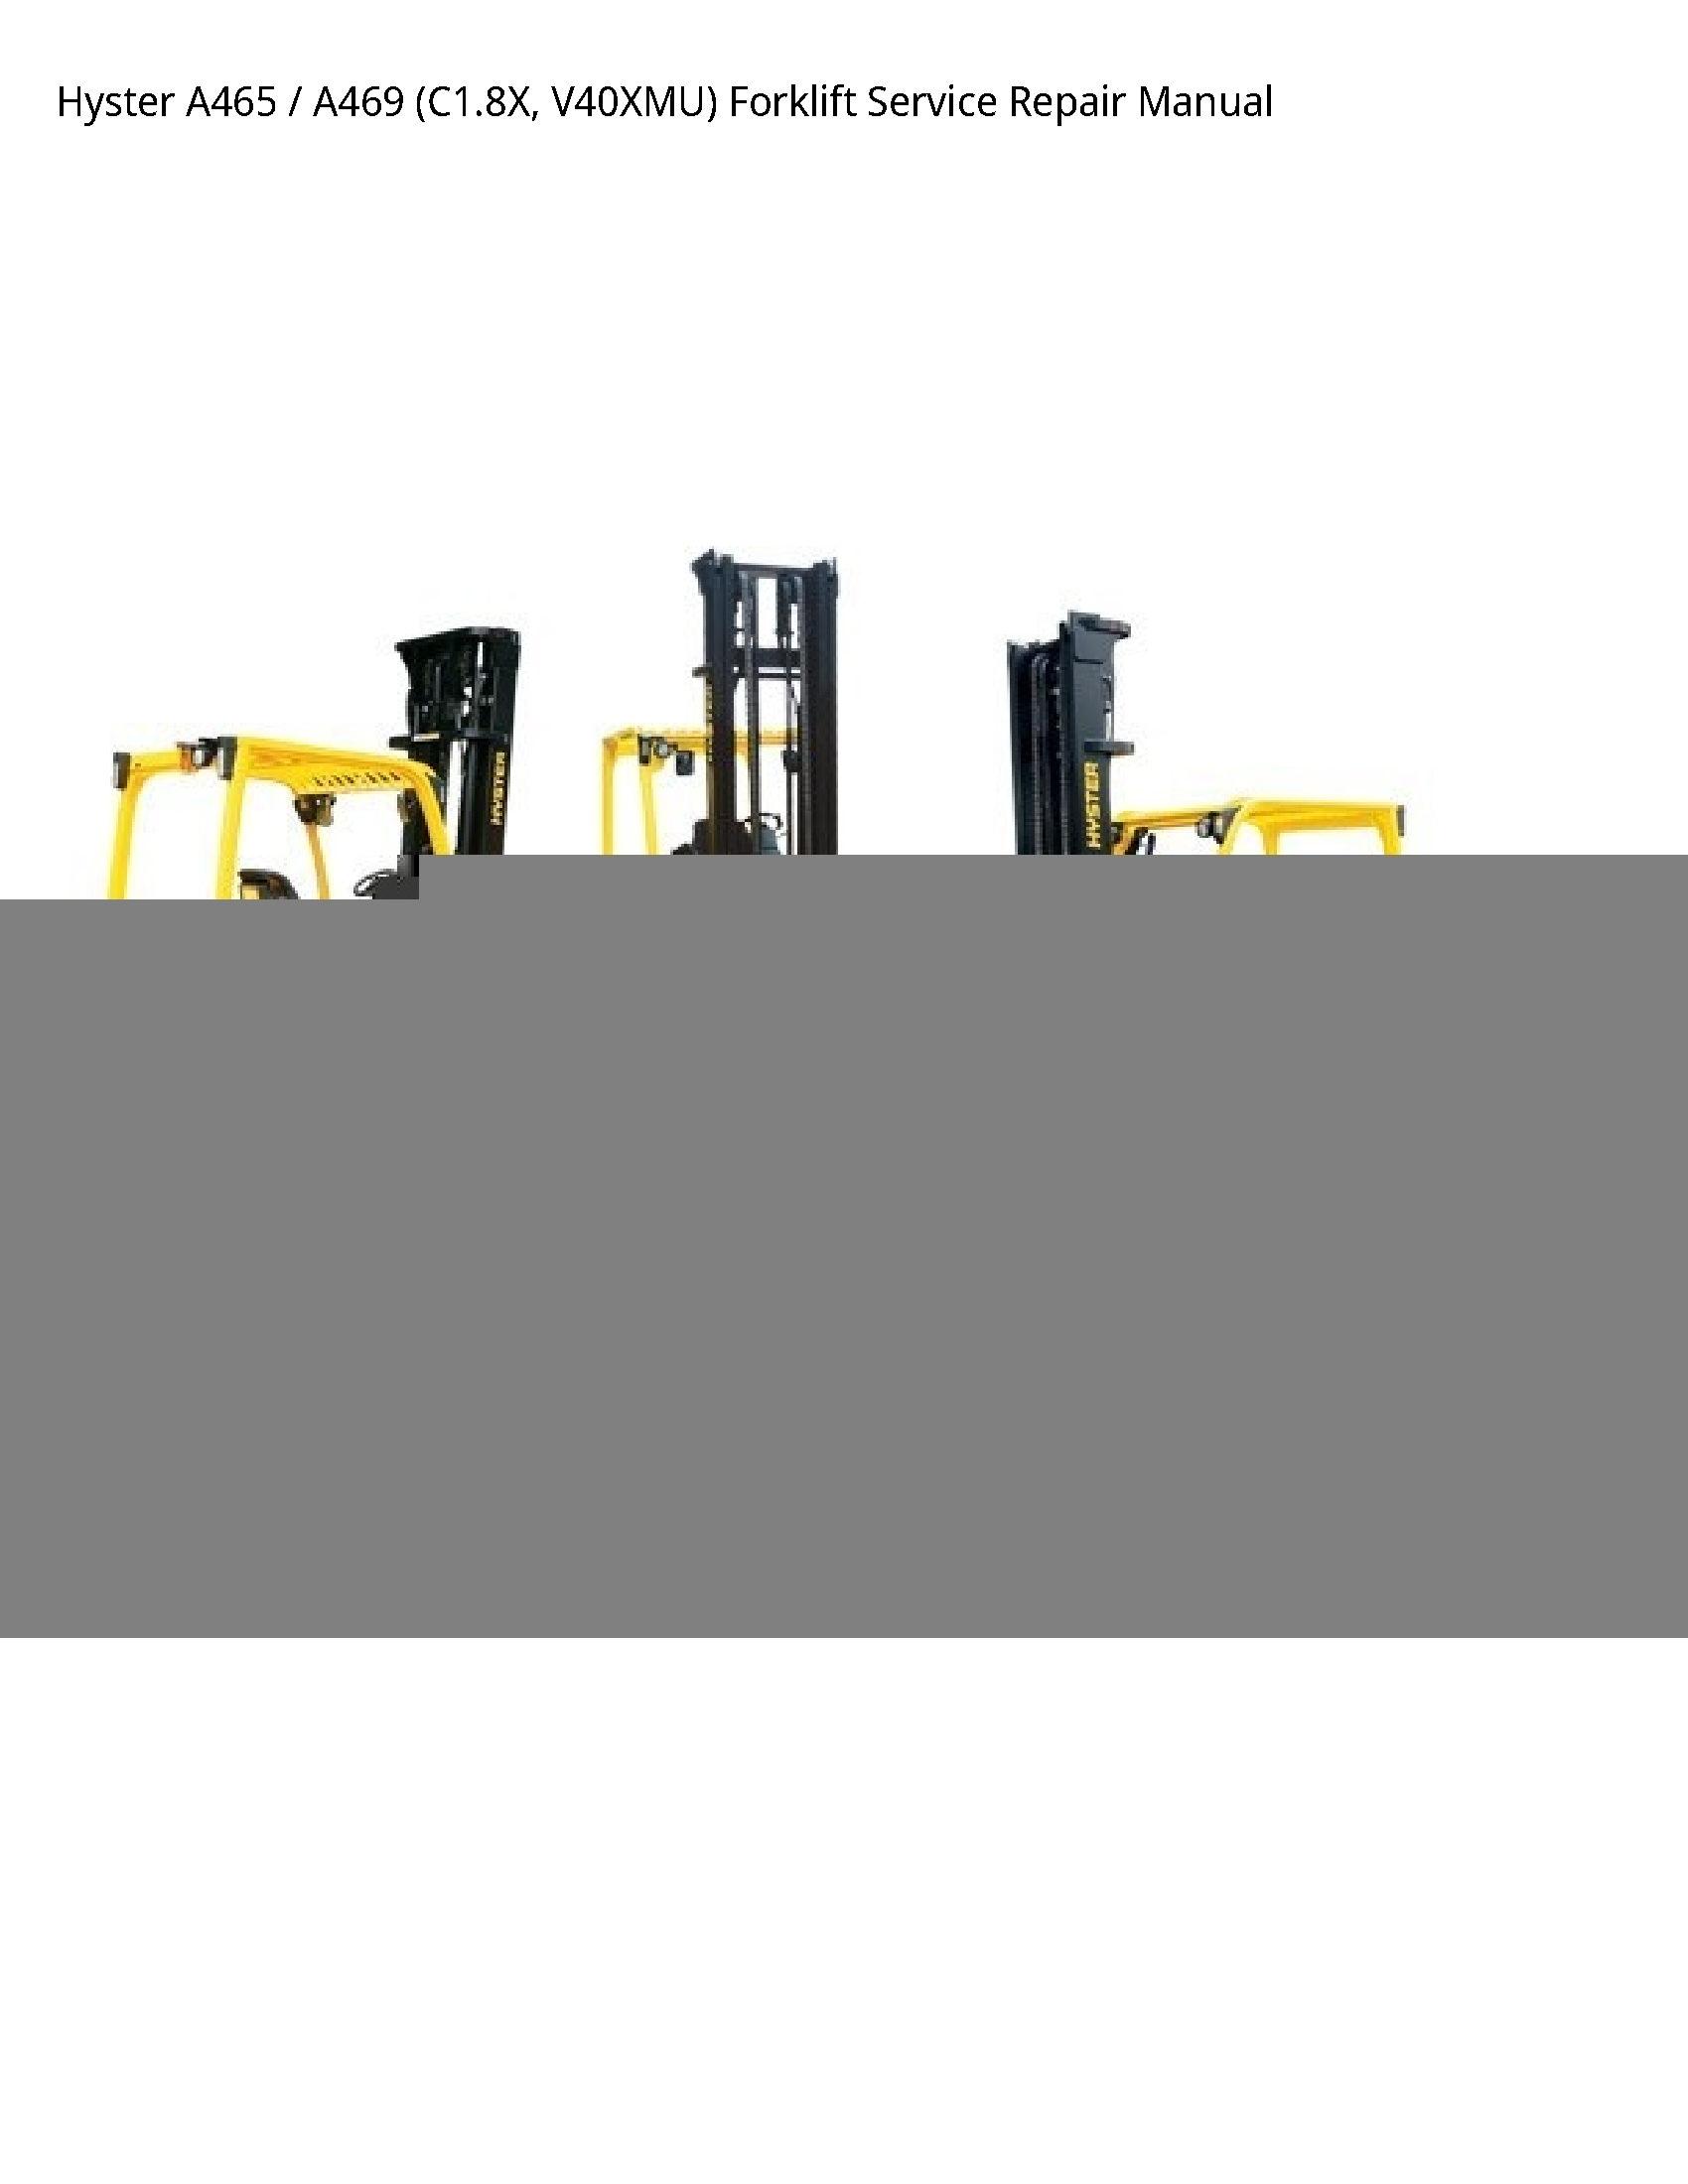 Hyster A465 Forklift manual